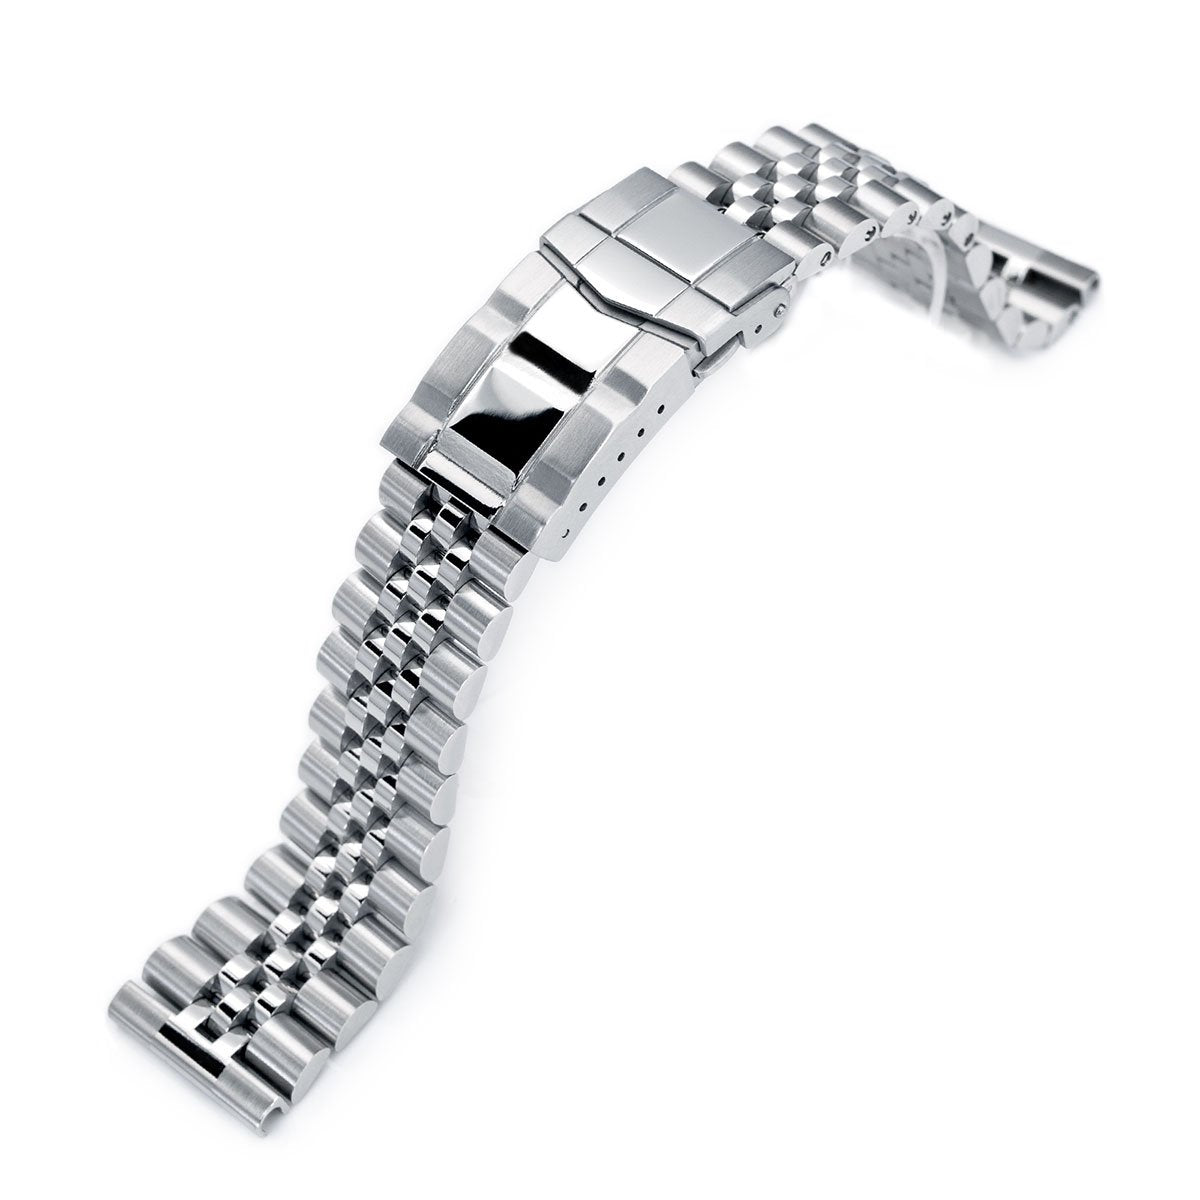 22mm Super-J Louis 316L Stainless Steel Watch Band Solid Straight End Brushed & Polished SUB Clasp Strapcode Watch Bands